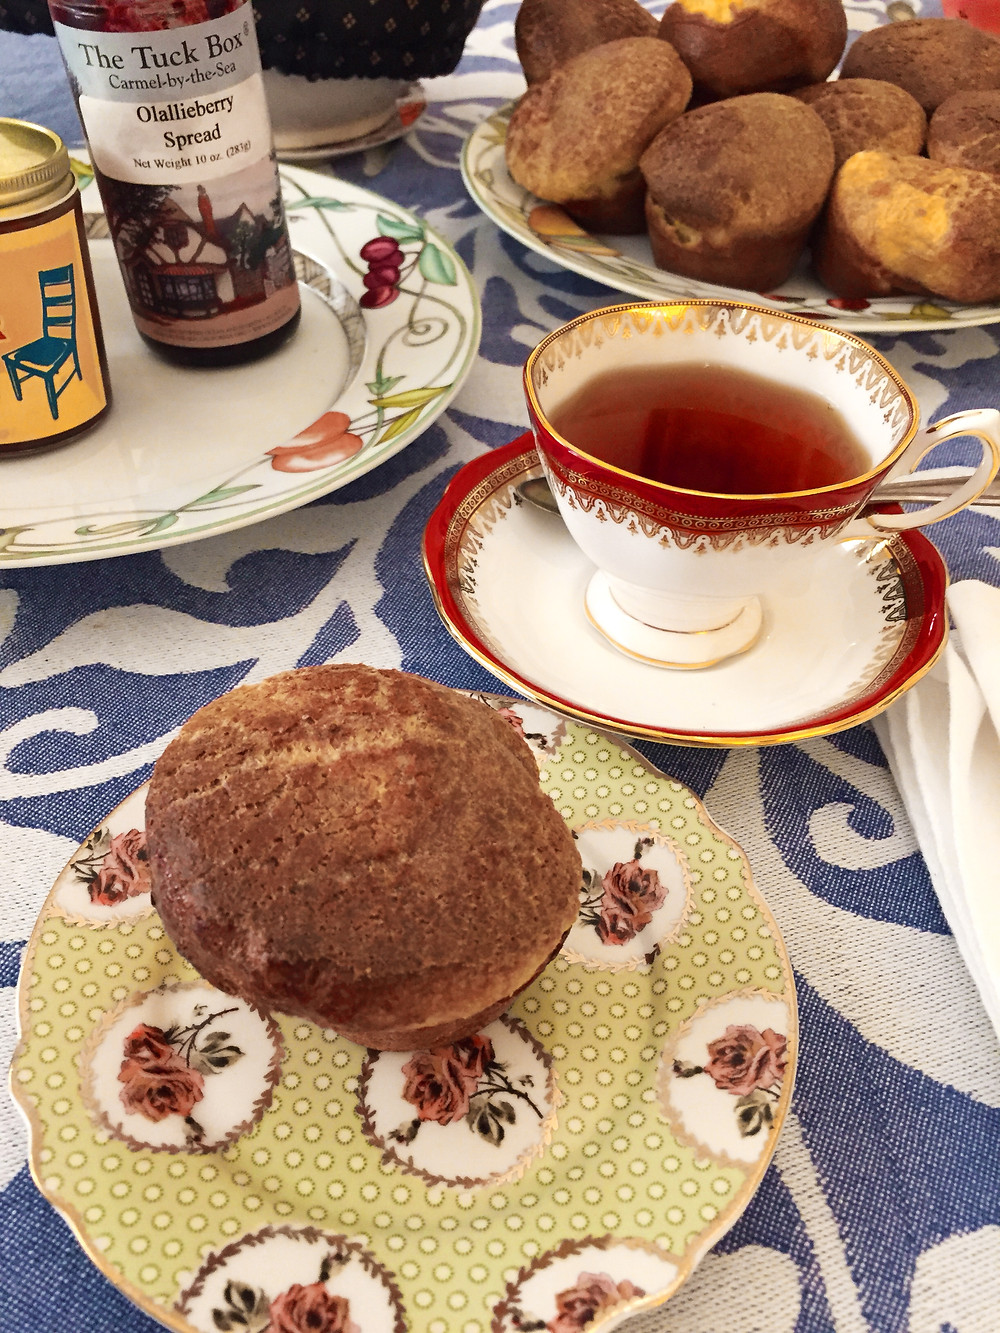 A small plate with a popover in the foreground next to a cup of tea, a plate with two jars of jam on it, and a plate of popovers sitting on a blue and white tablecloth.